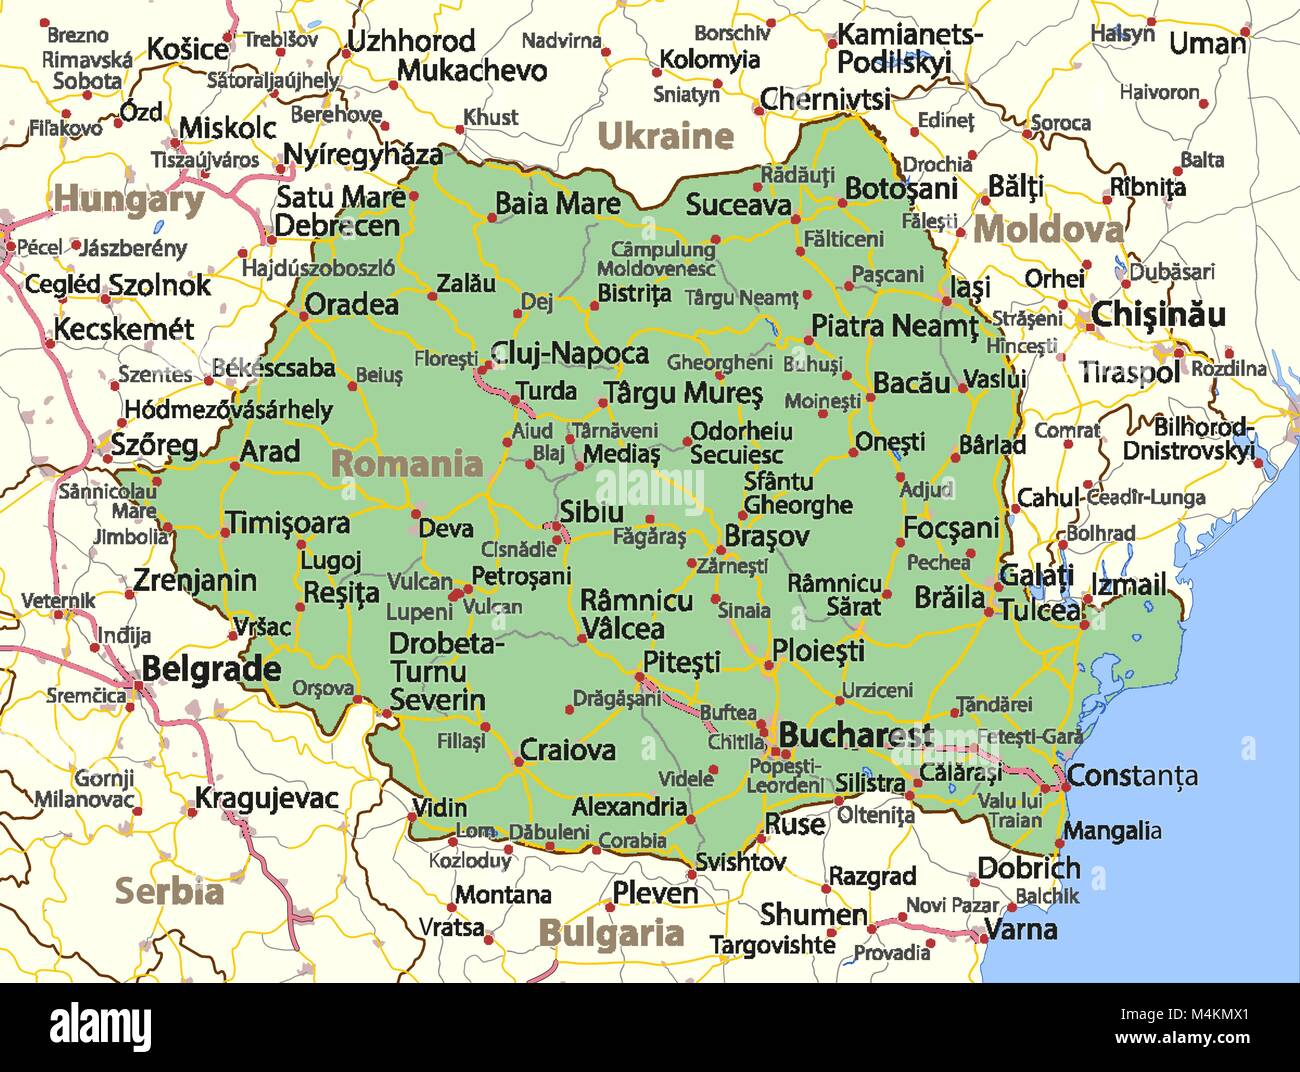 Map of Romania. Shows country borders, urban areas, place names and ...